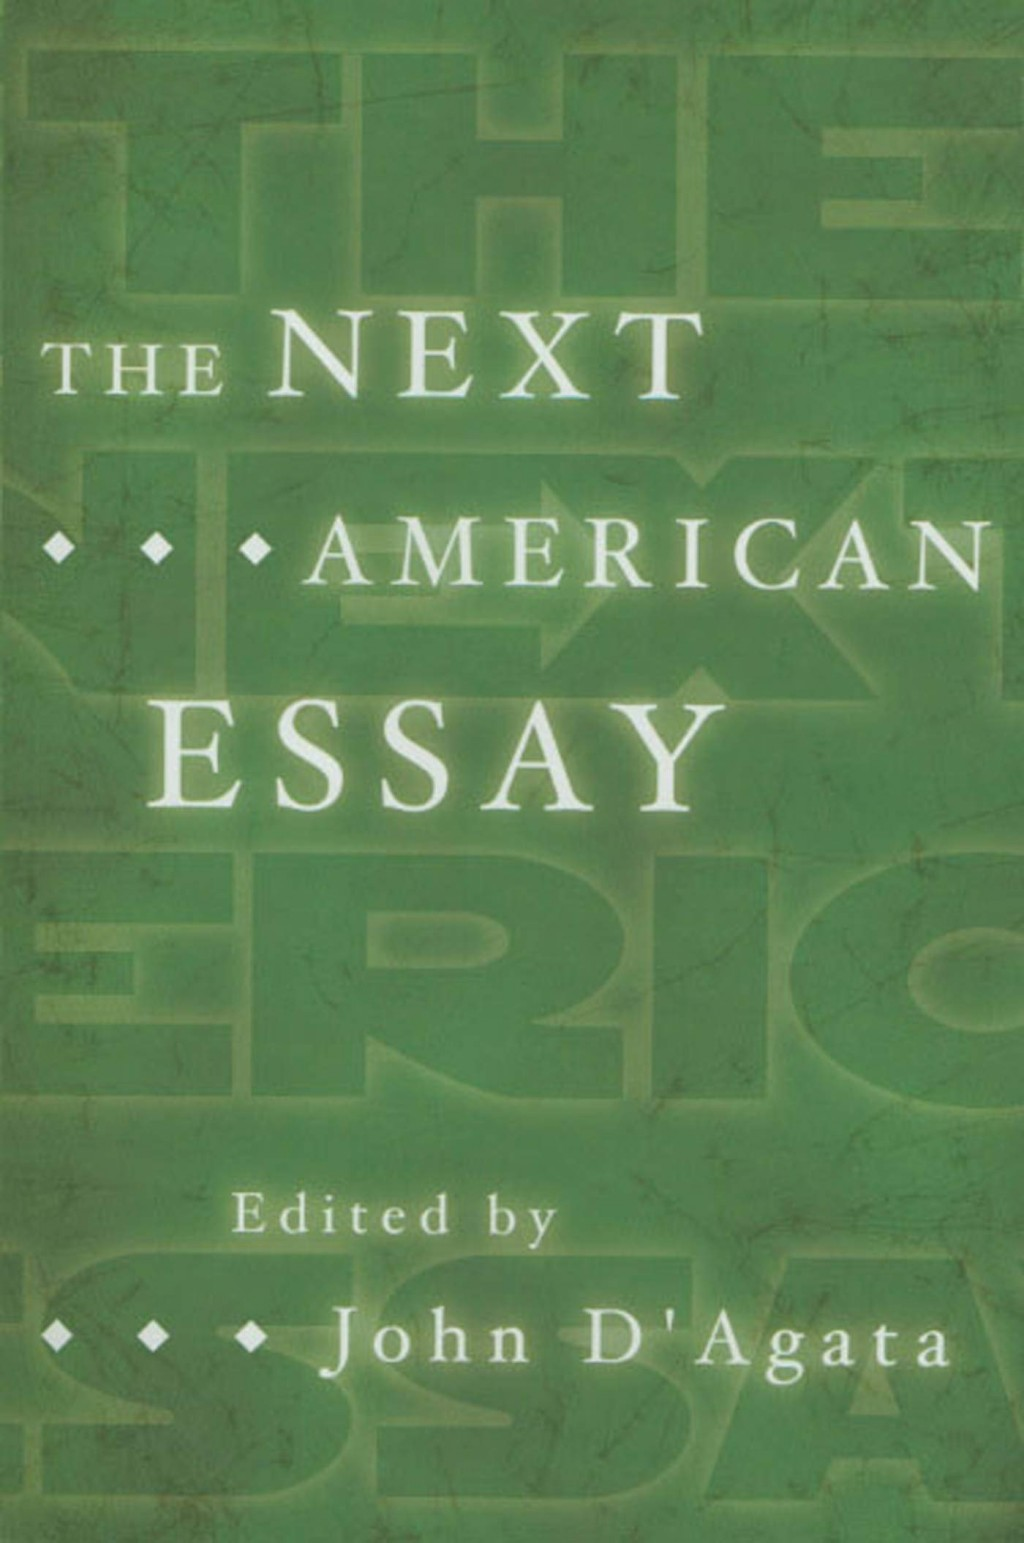 024 61uwmdqvqdl American Essay Striking Dream Scholarship Native Titles Style Large